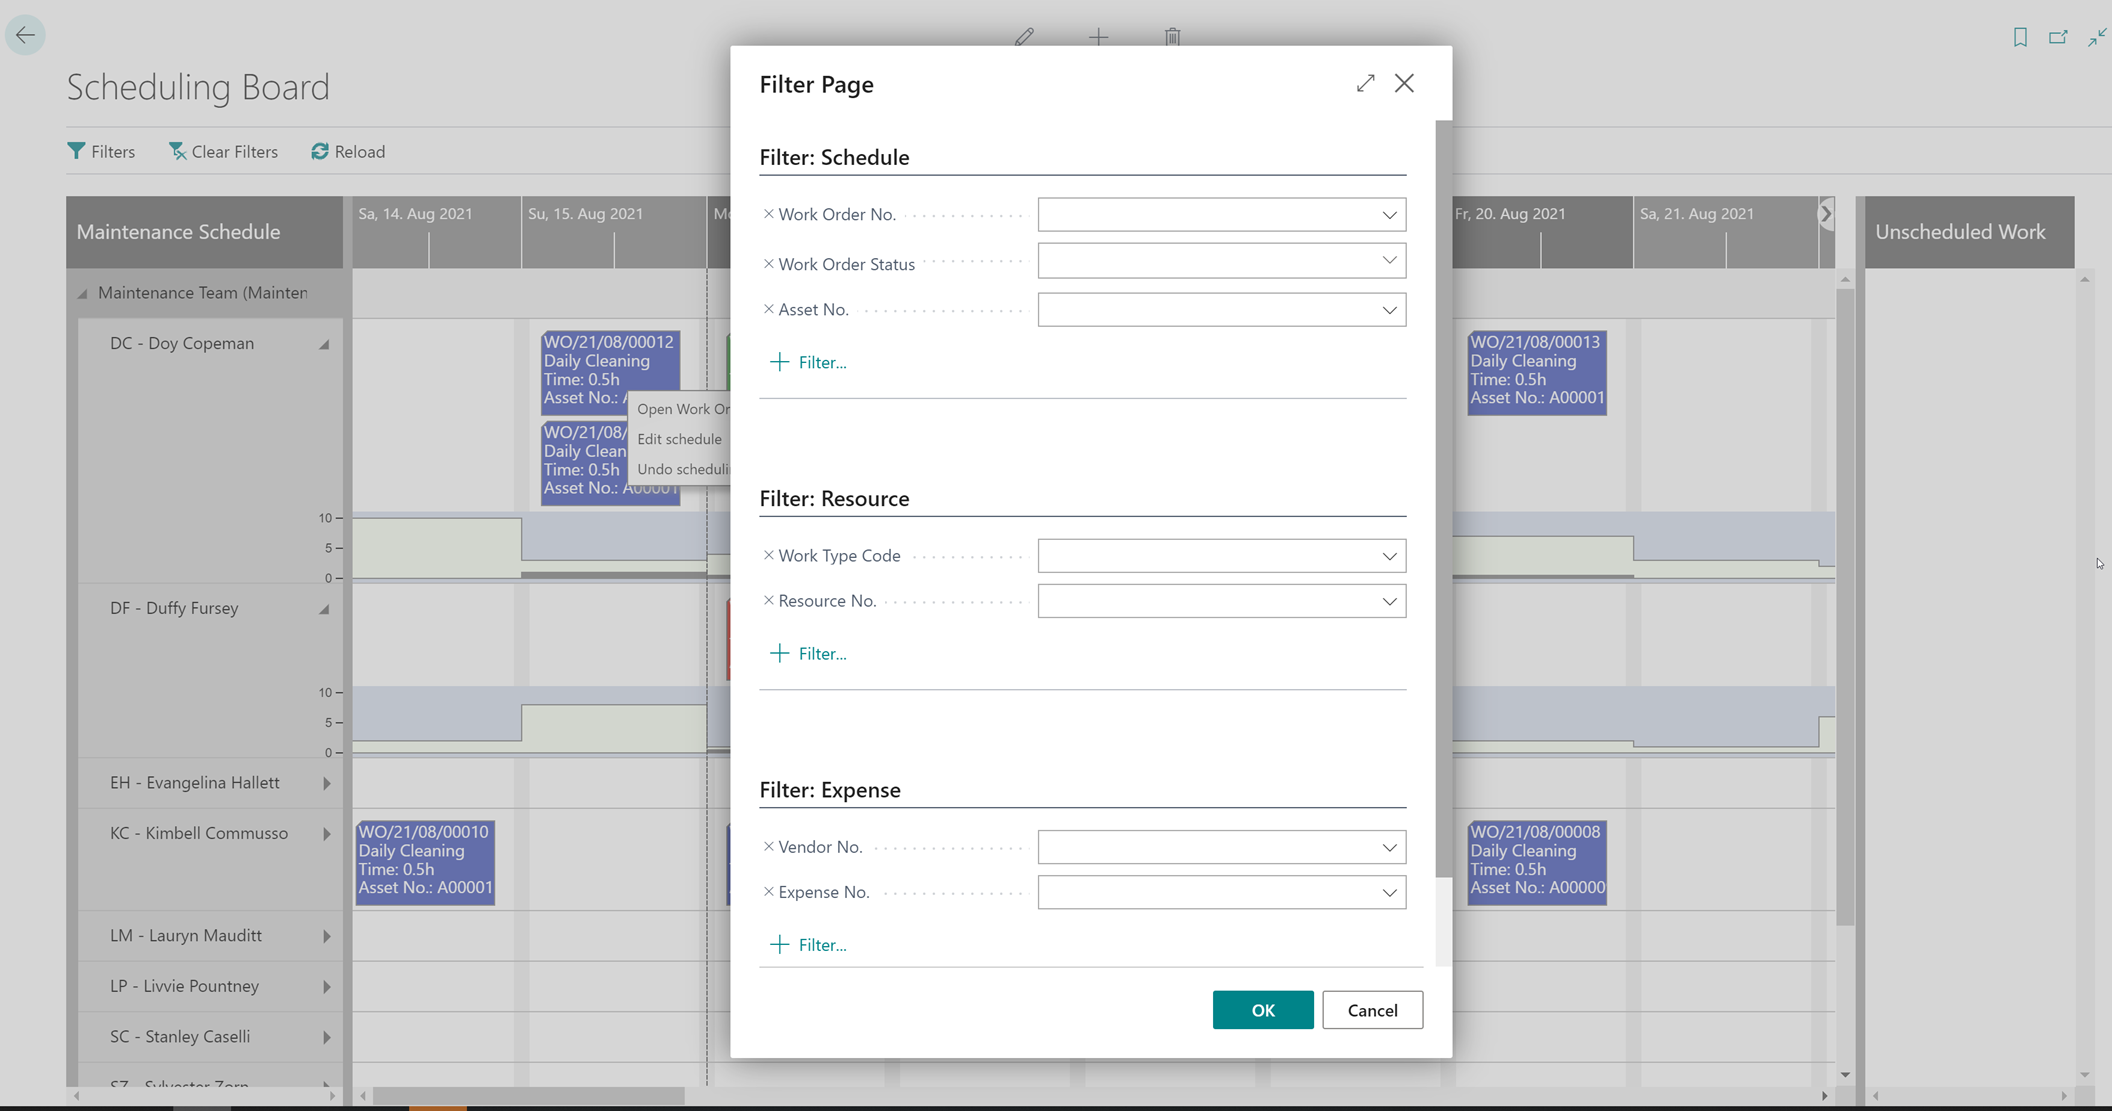 dynaway scheduling board fully integrated